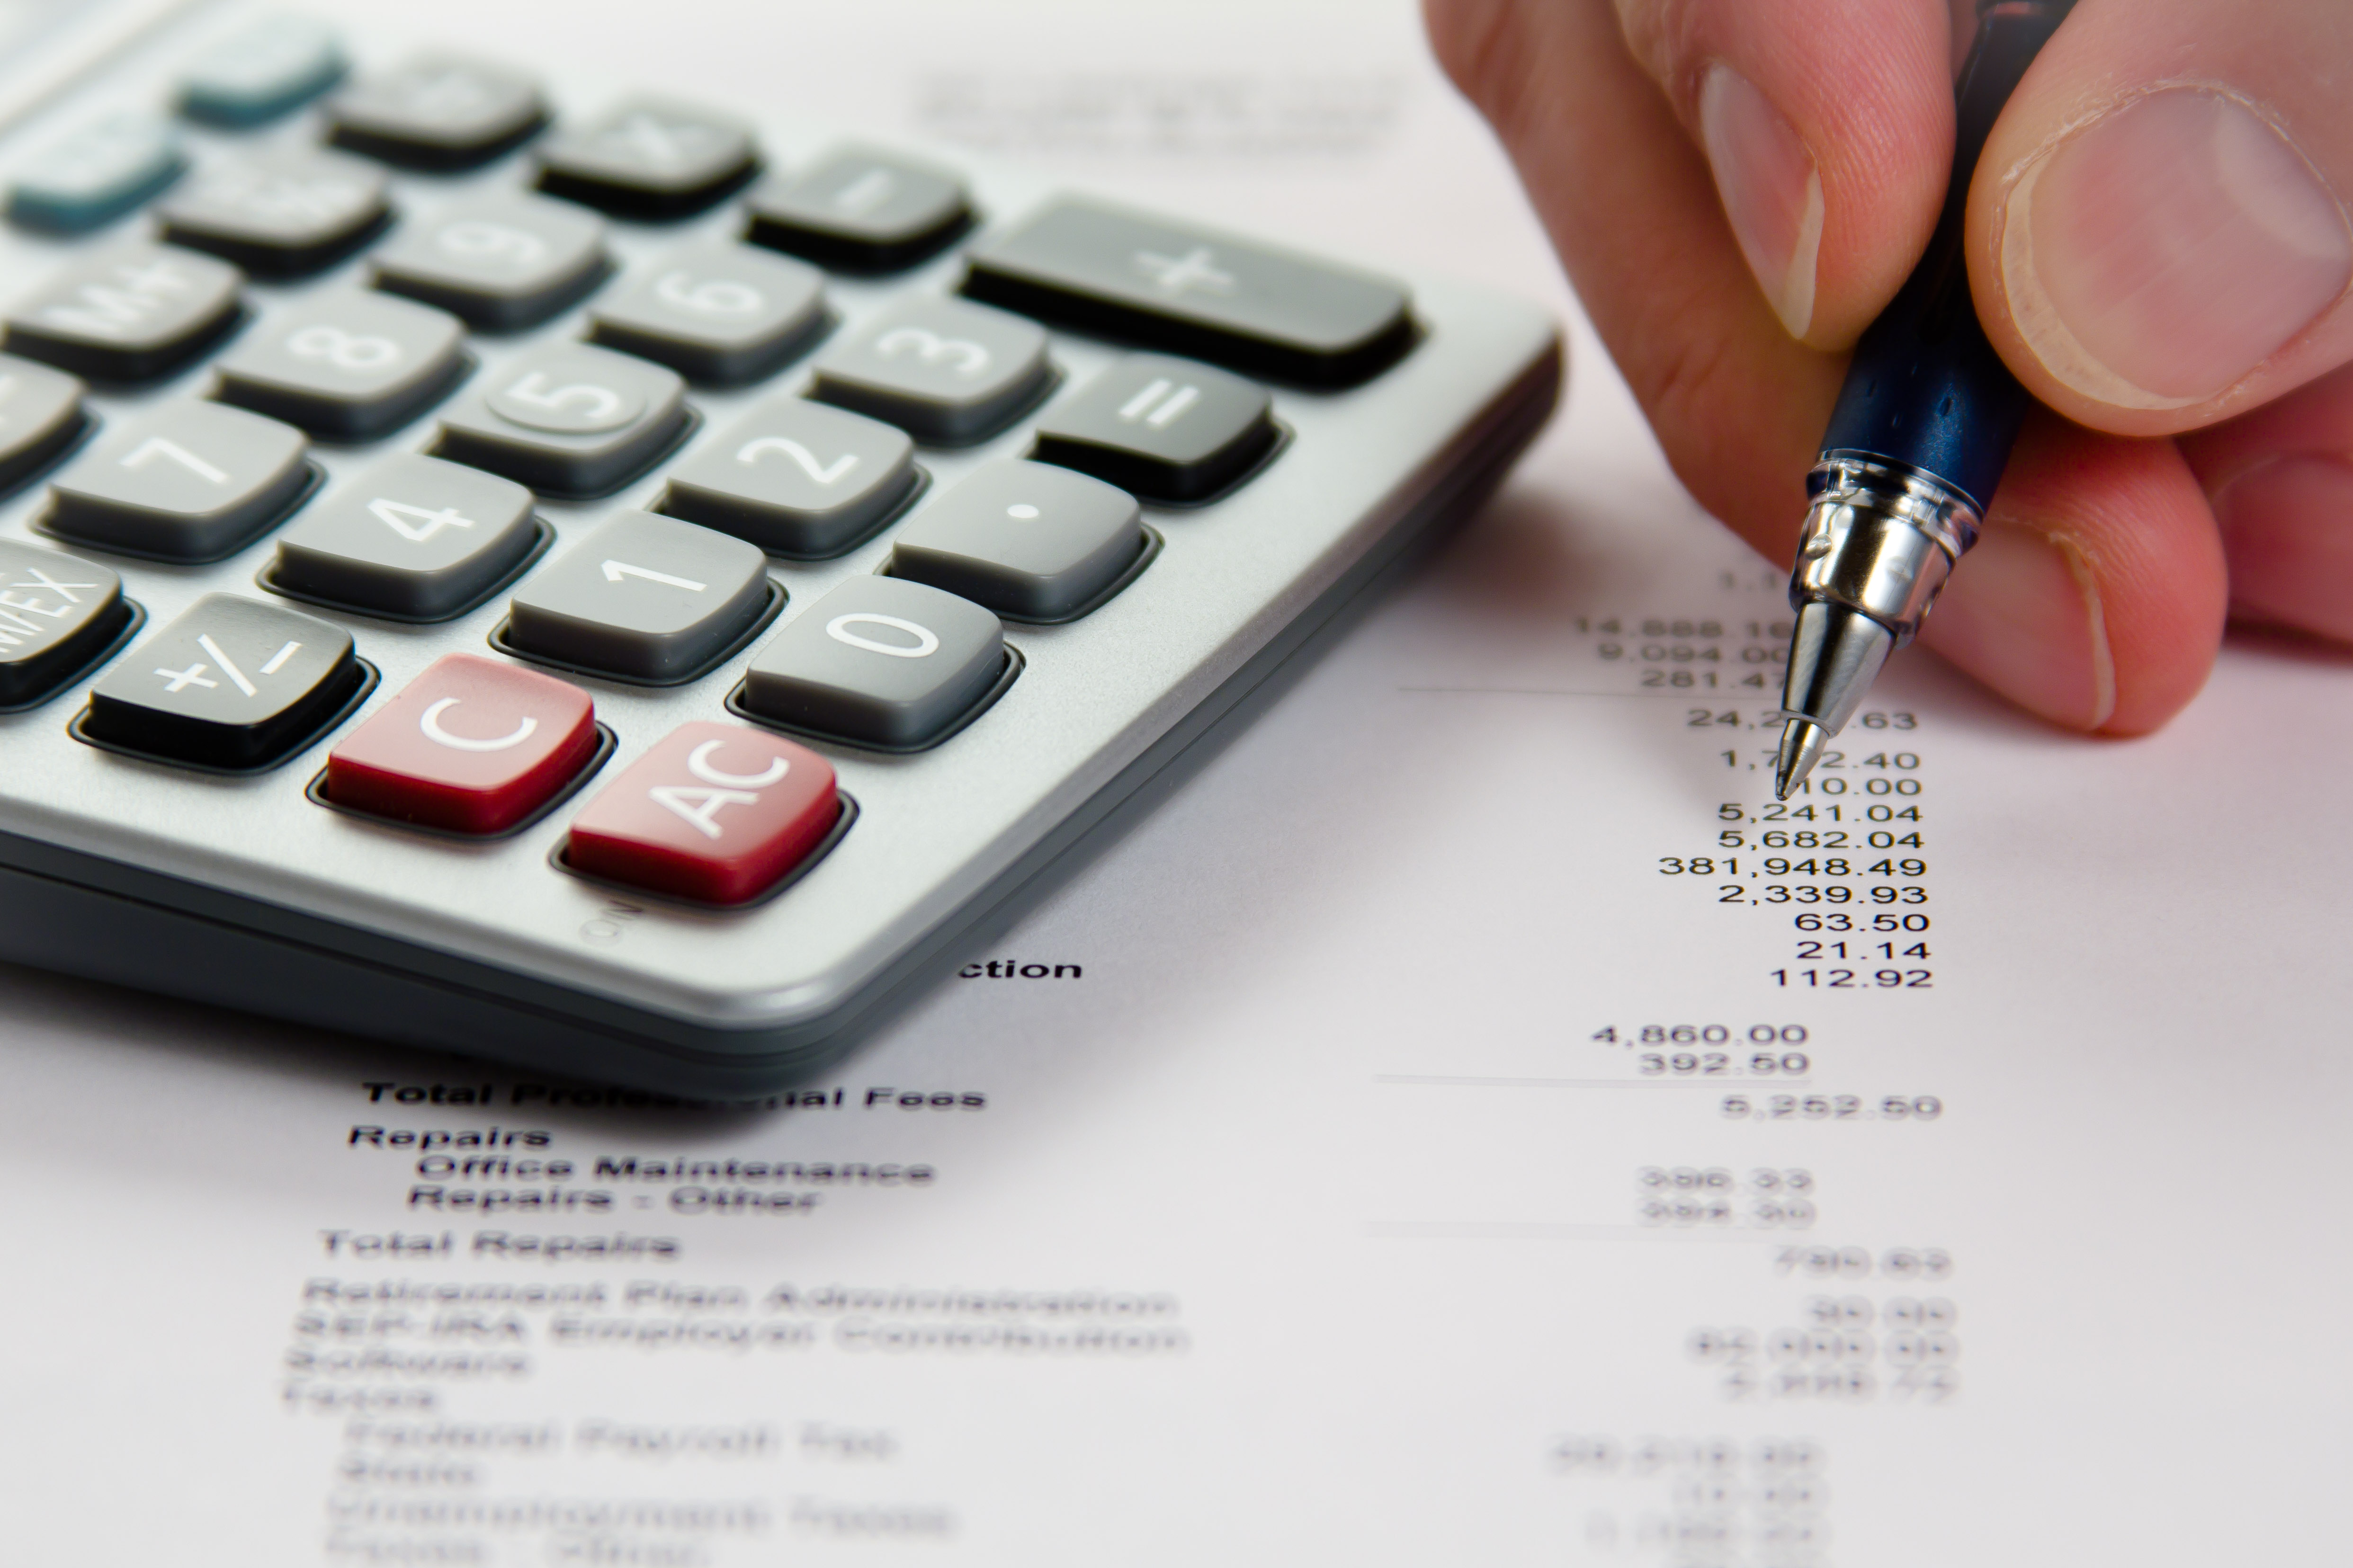 help you do your accounting and data entry jobs for you